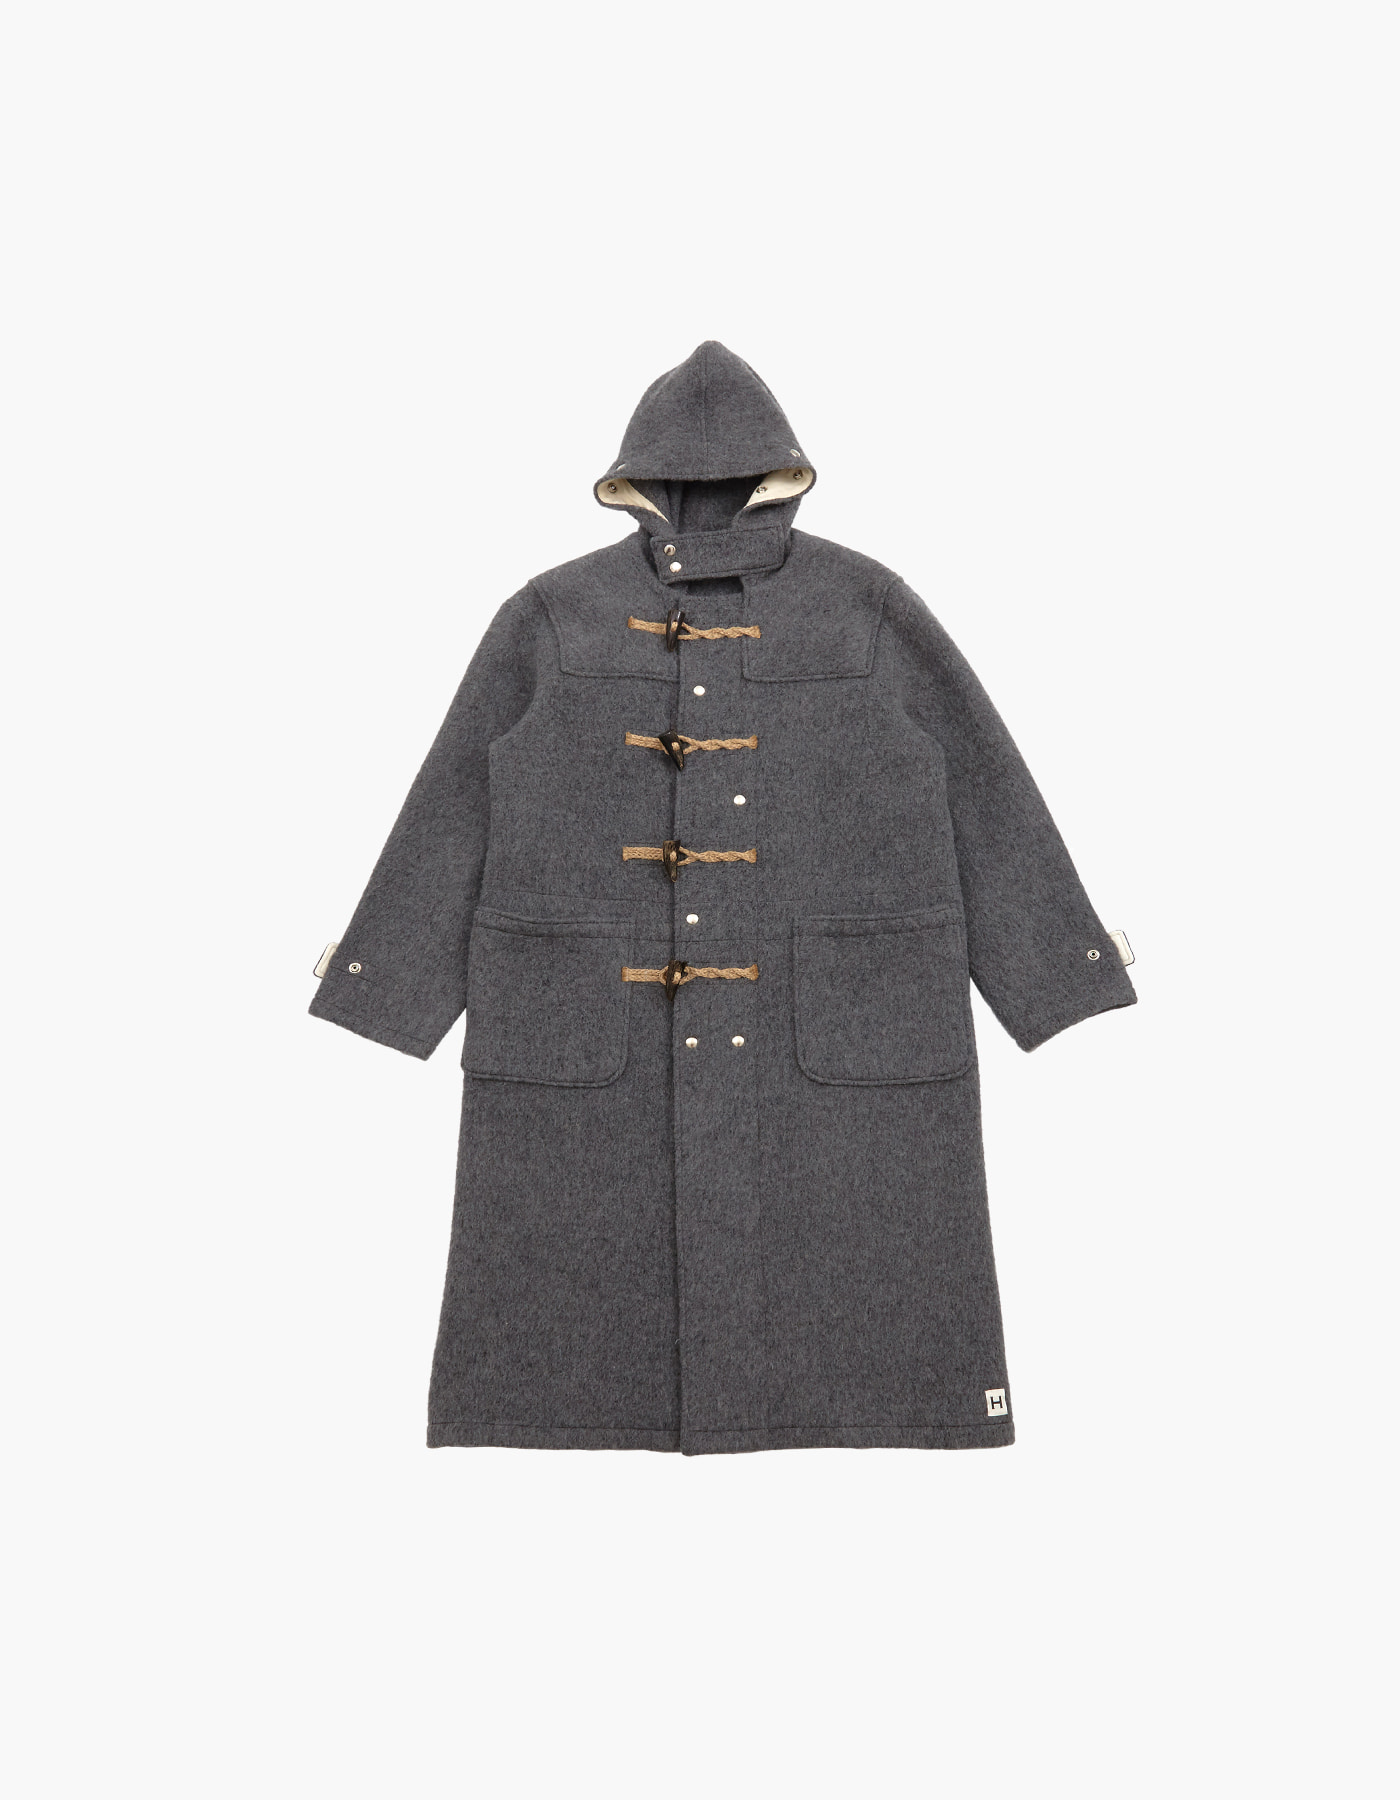 WOOL DUFFLE COAT / GREY